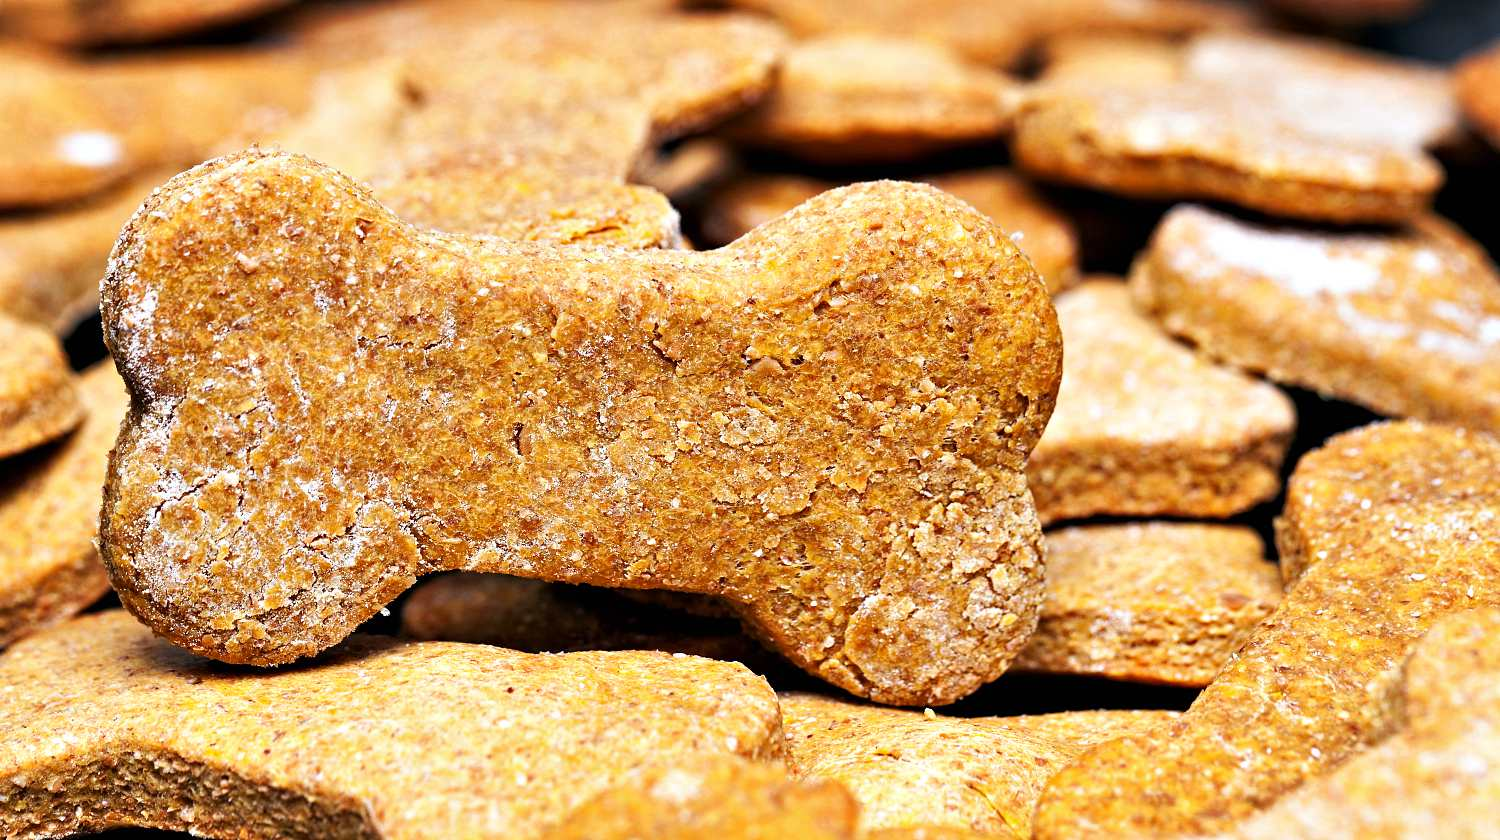 Feature | Large batch of bone-shaped homemade dog cookies | Homemade Dog Biscuits Recipe | How To Make Doggie Treats